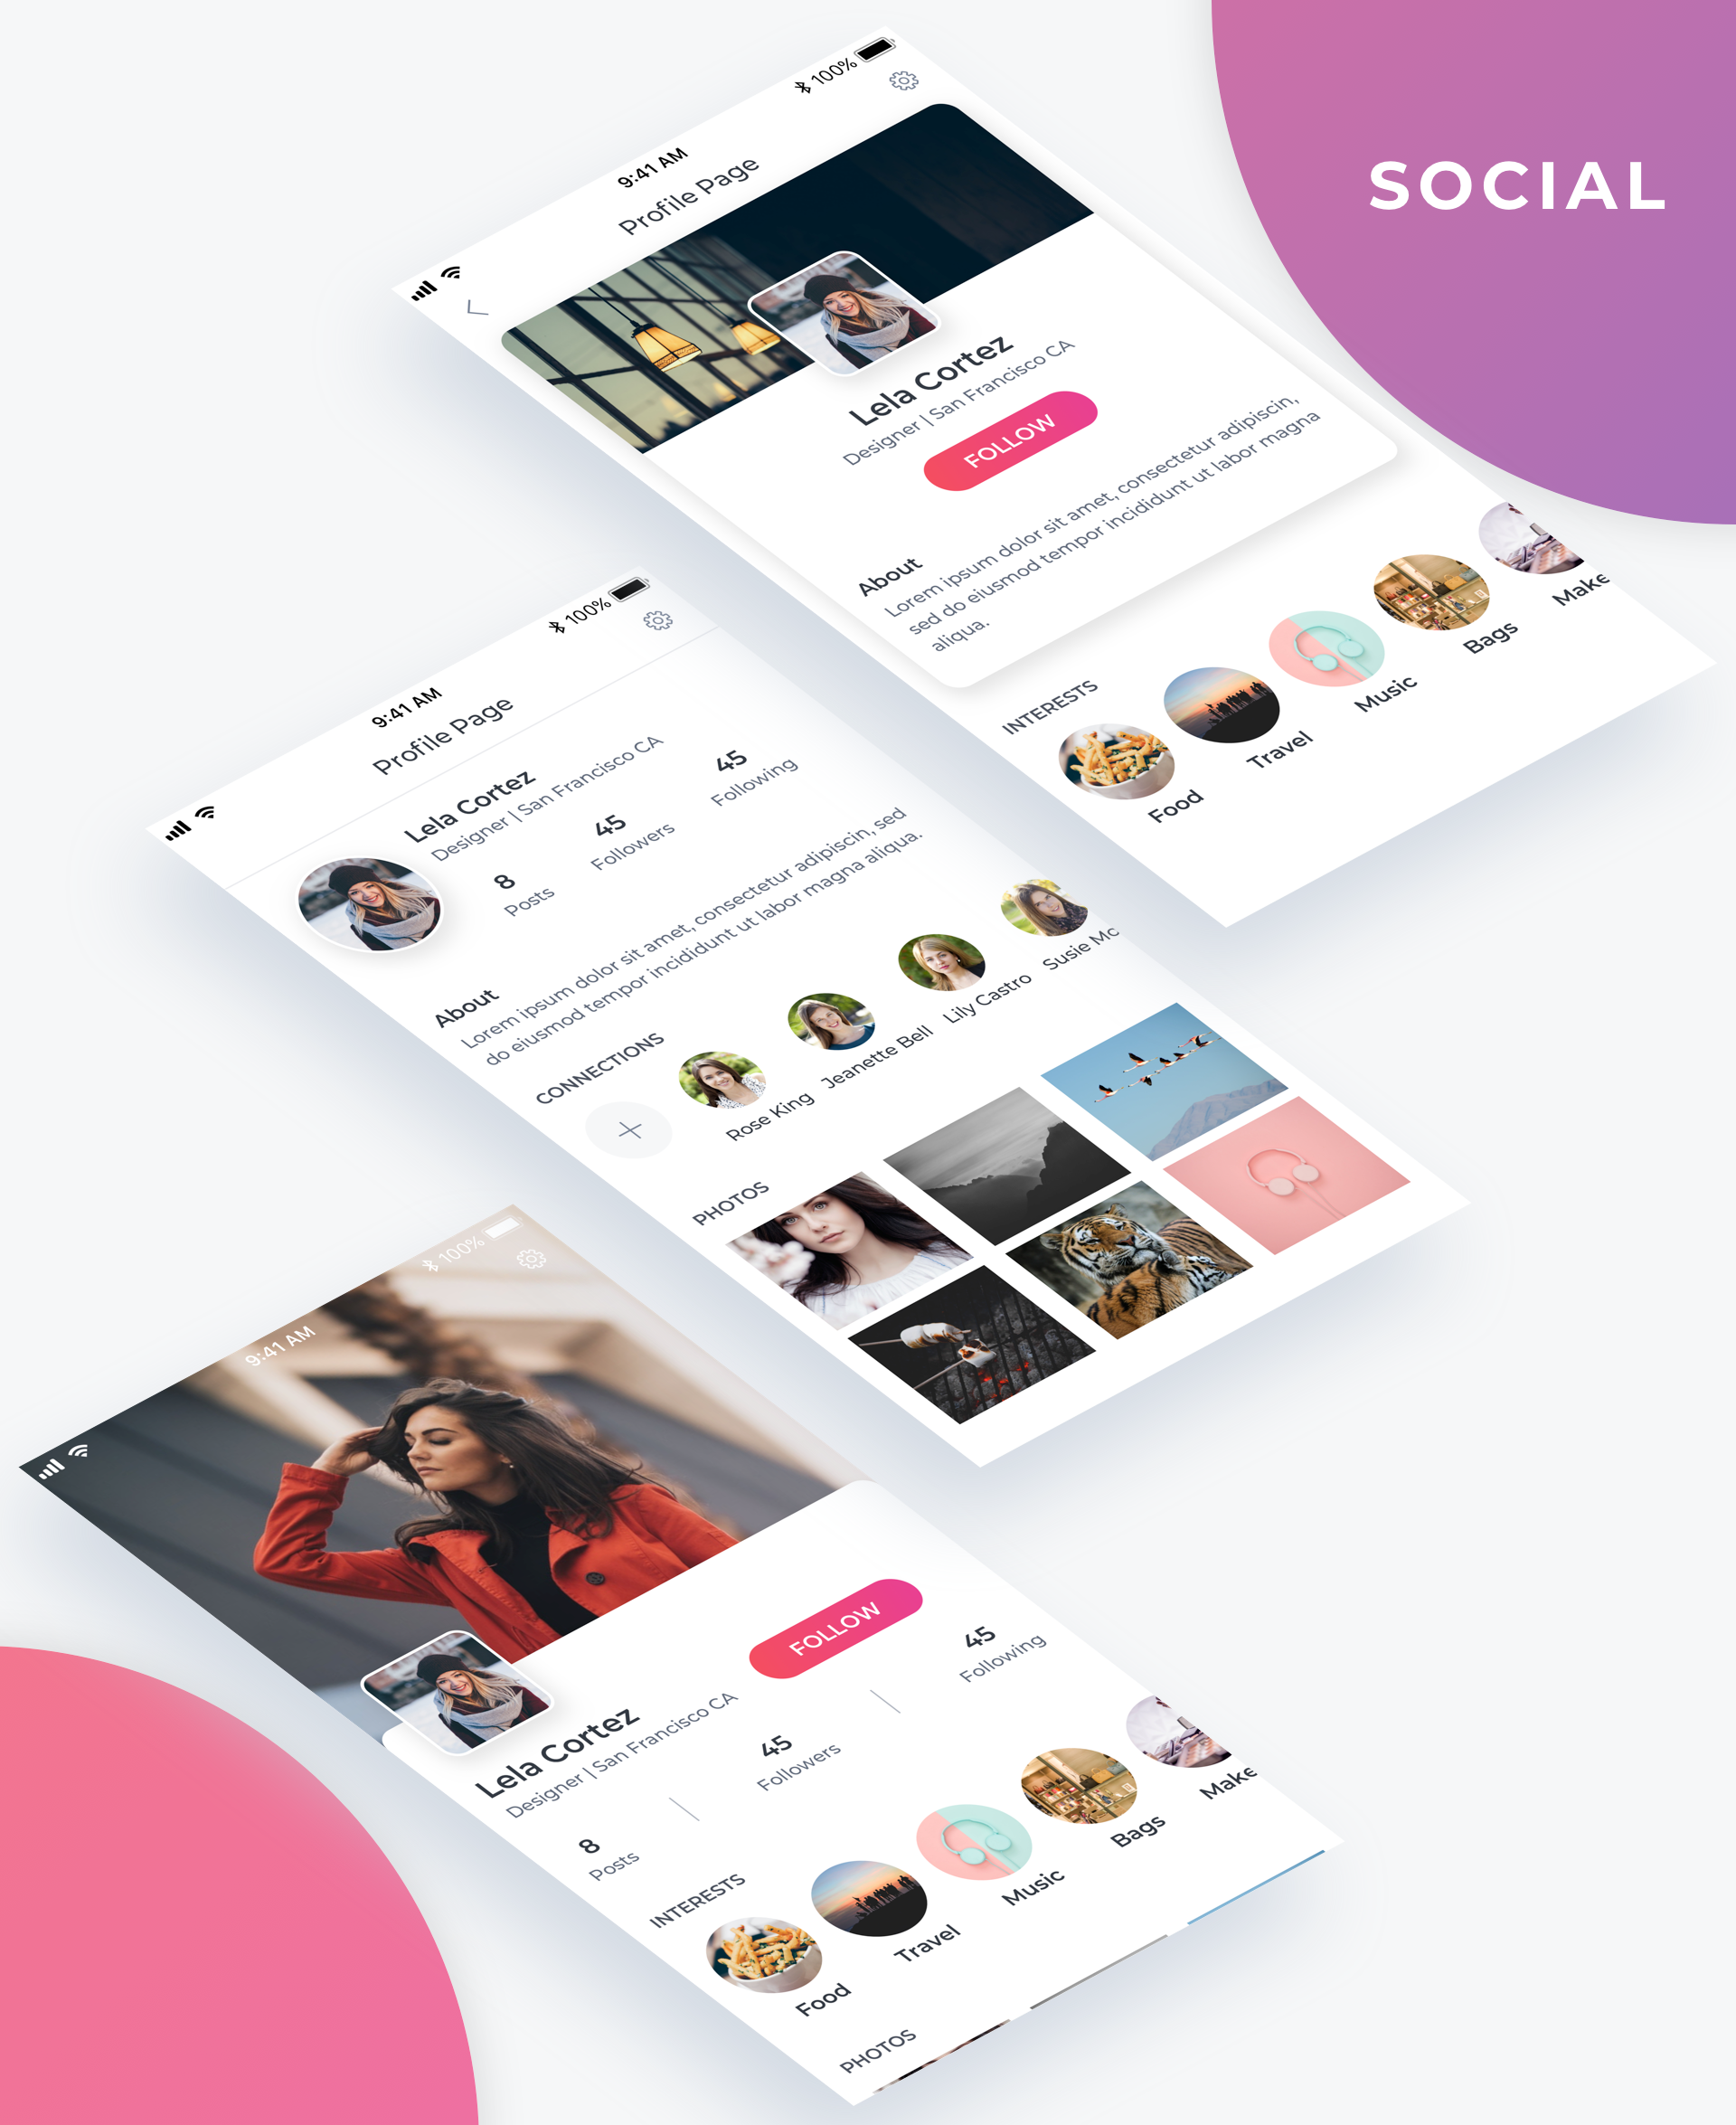 Essential UI Kit - Social Page